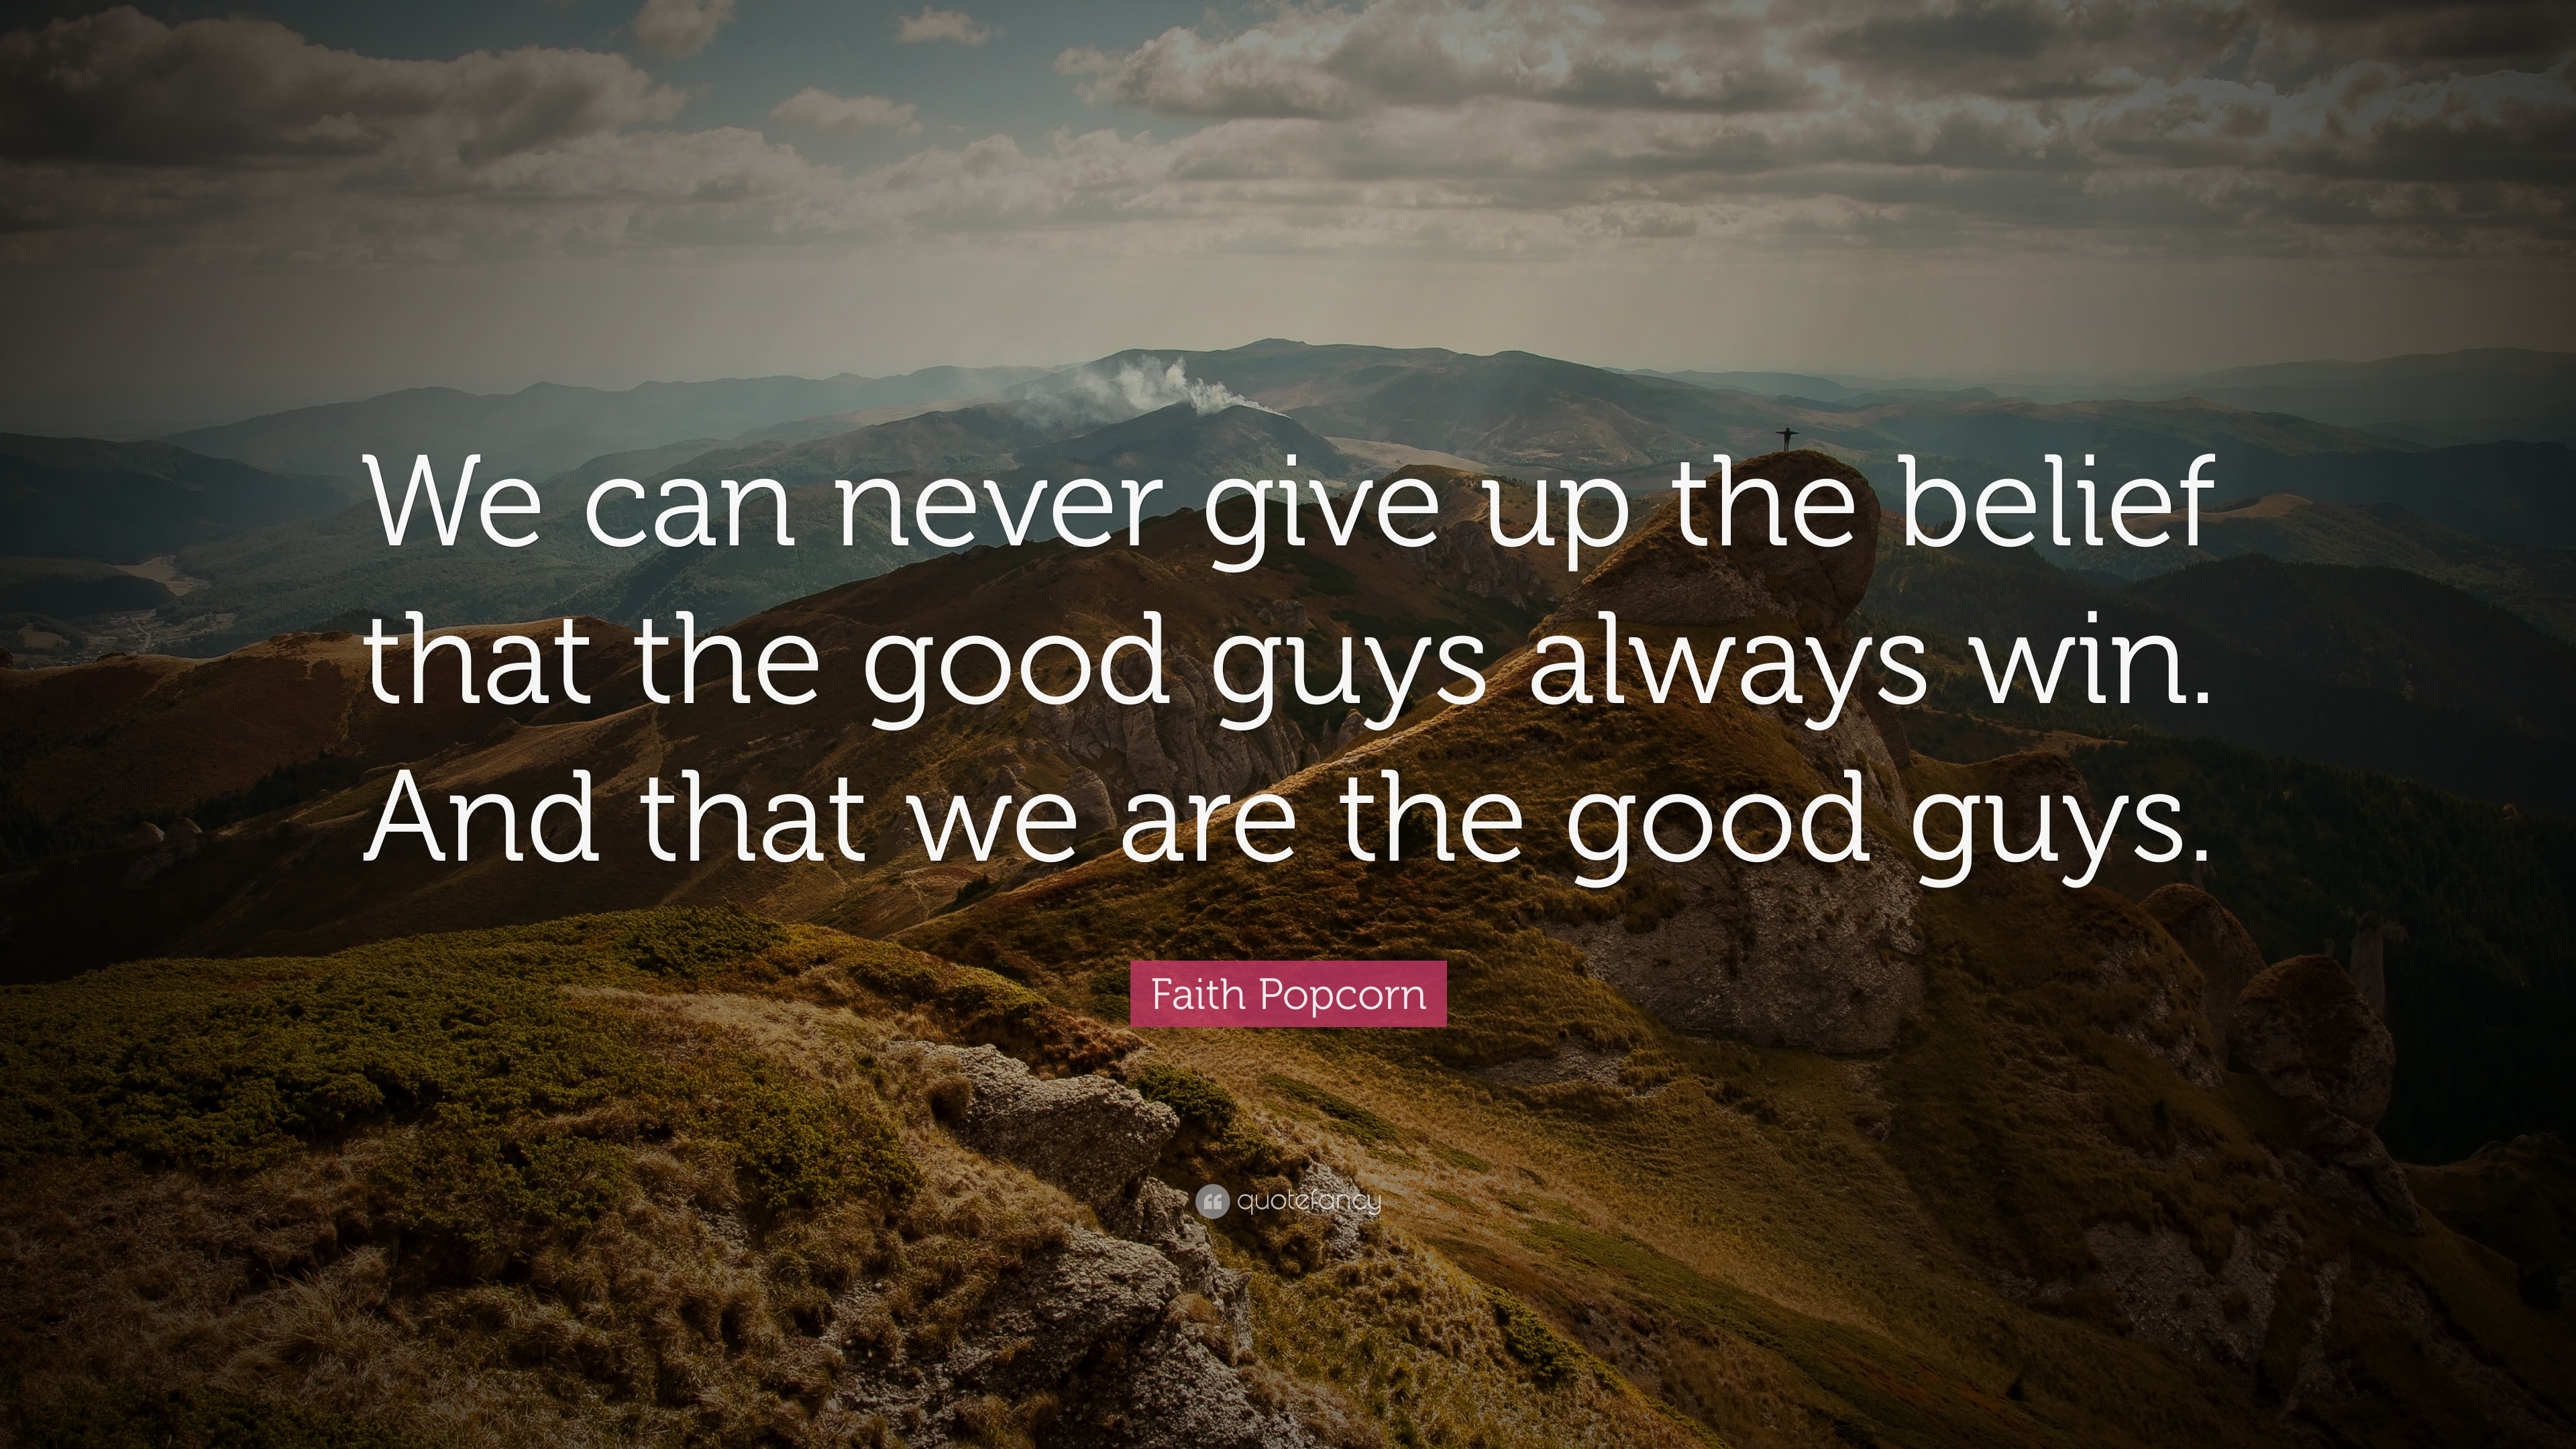 The good guys never win quotes